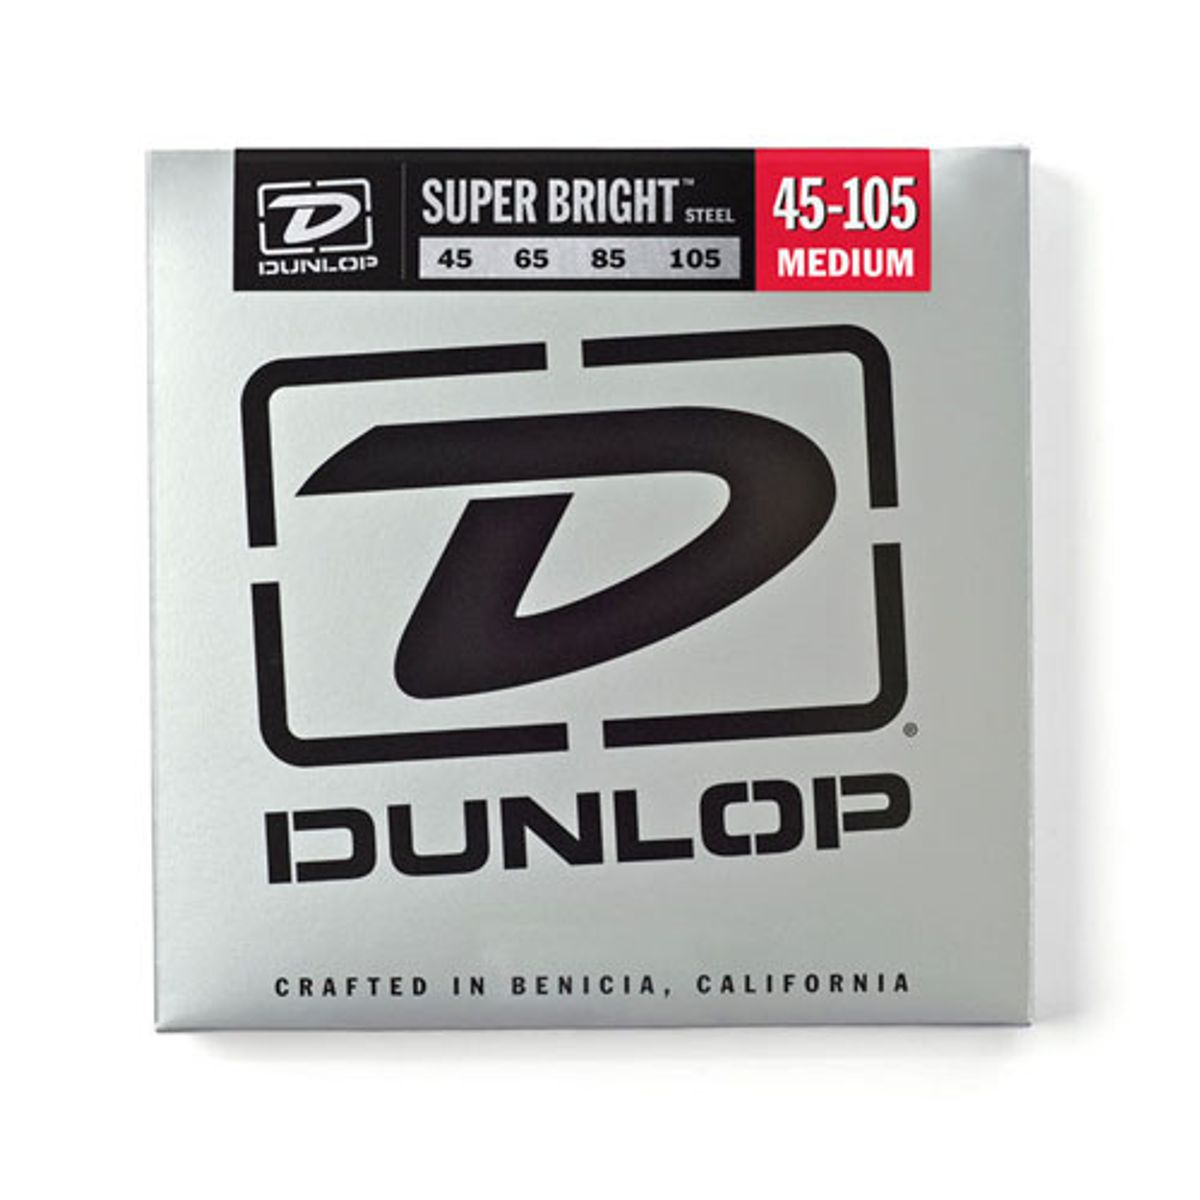 Dunlop Introduces Super Bright Bass Strings